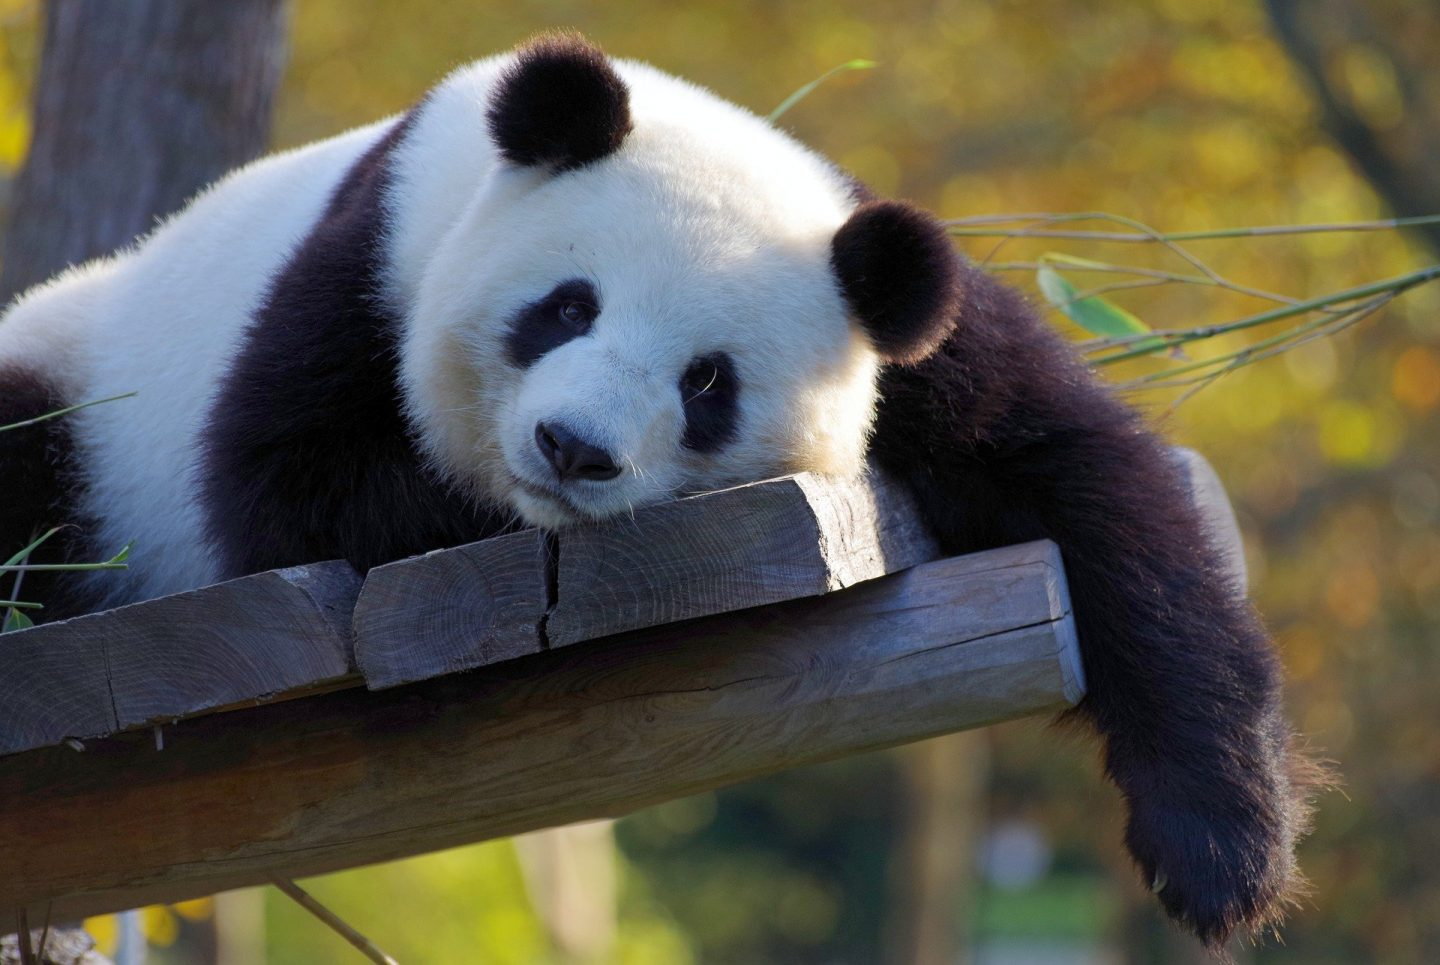 Bamboo cloth is used for men's underwear and this sleeping panda agrees Bamboo is comfortable